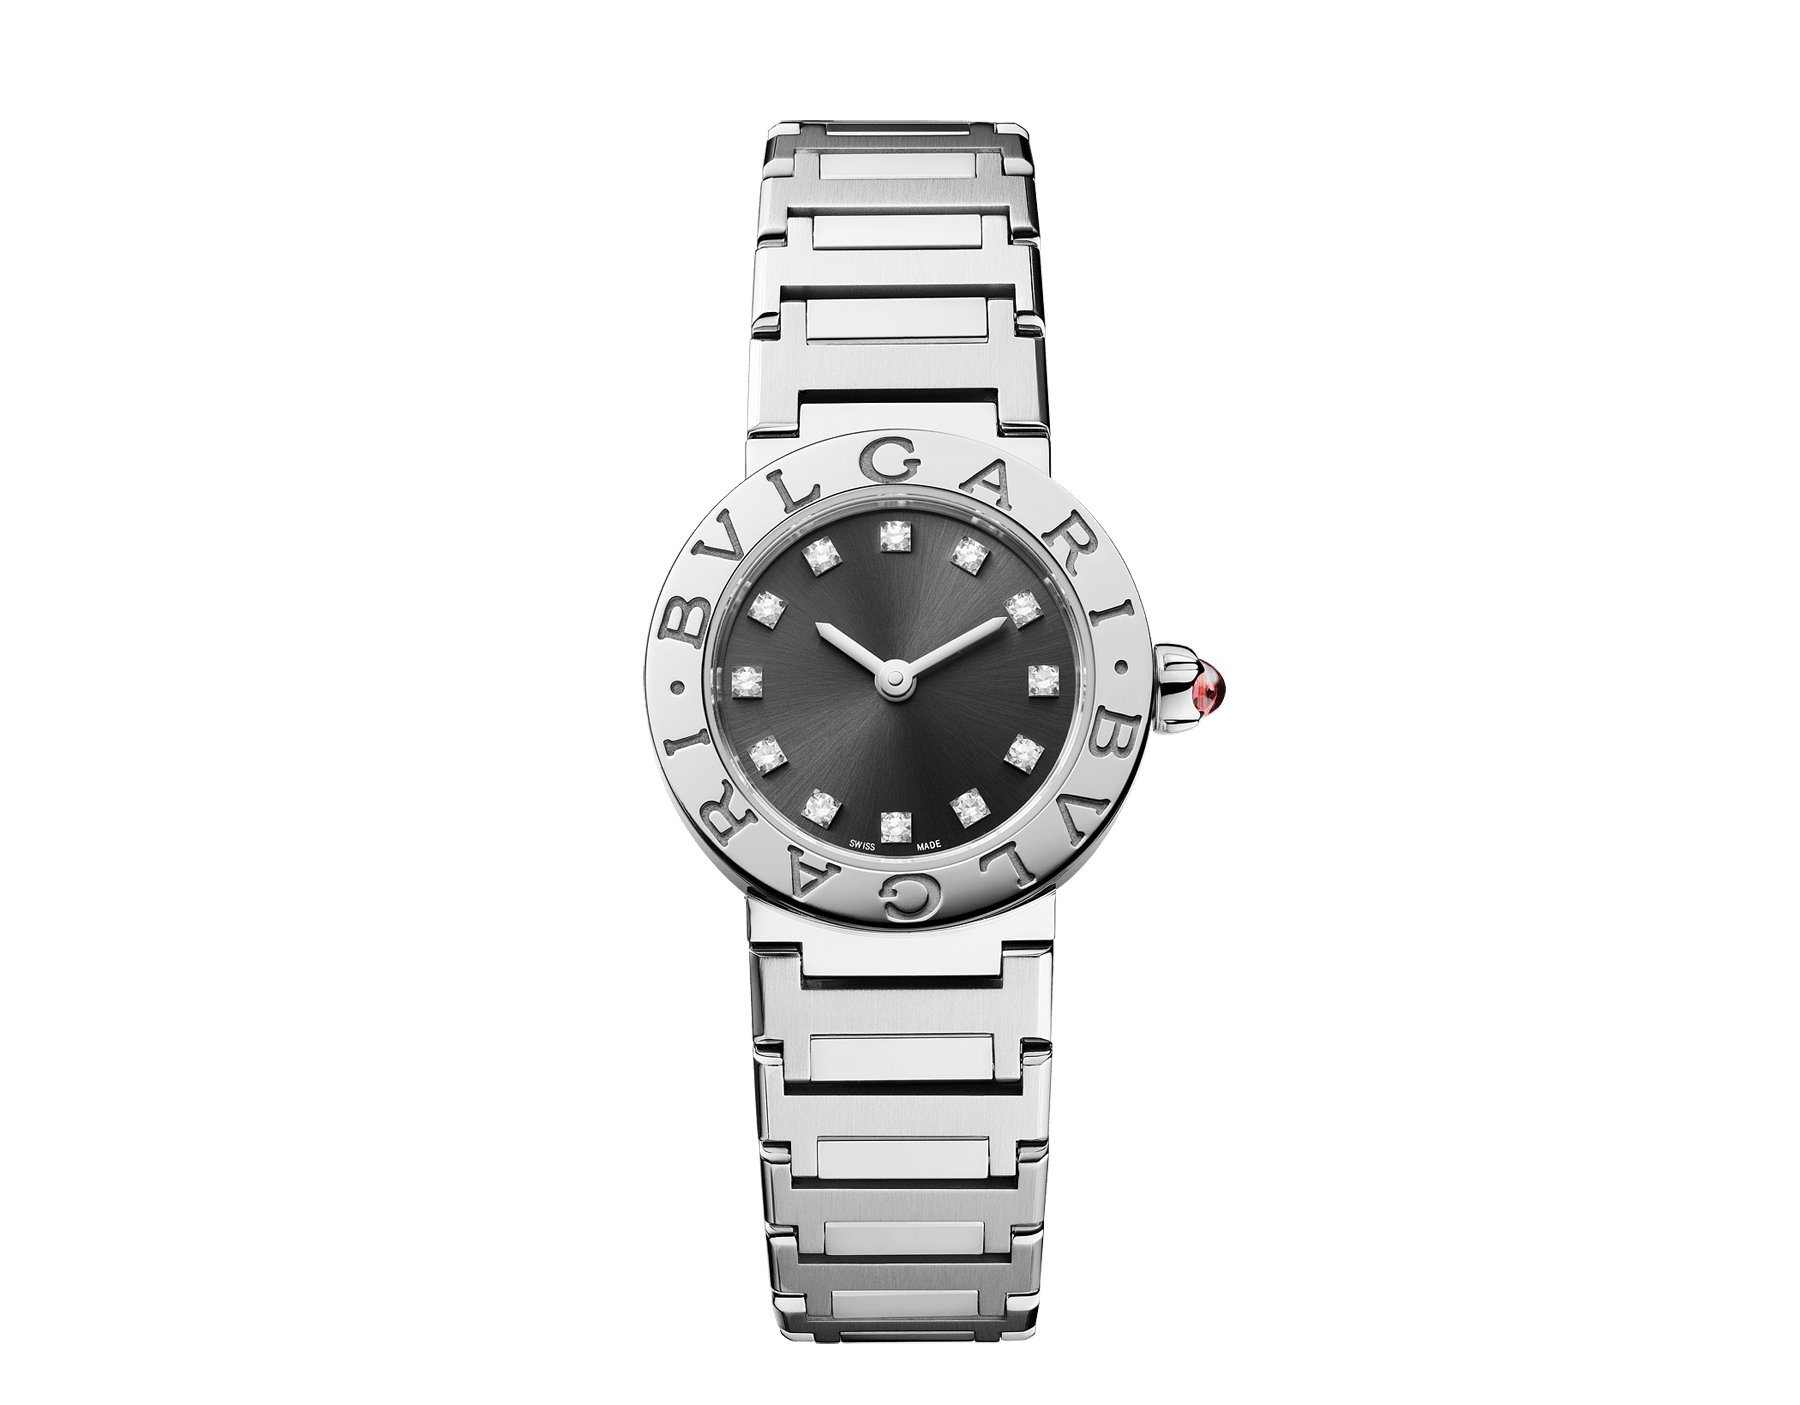 BVLGARI BVLGARI LADY watch in stainless steel case and bracelet, stainless steel bezel engraved with double logo, anthracite satiné soleil lacquered dial and diamond indexes 102942 image 1